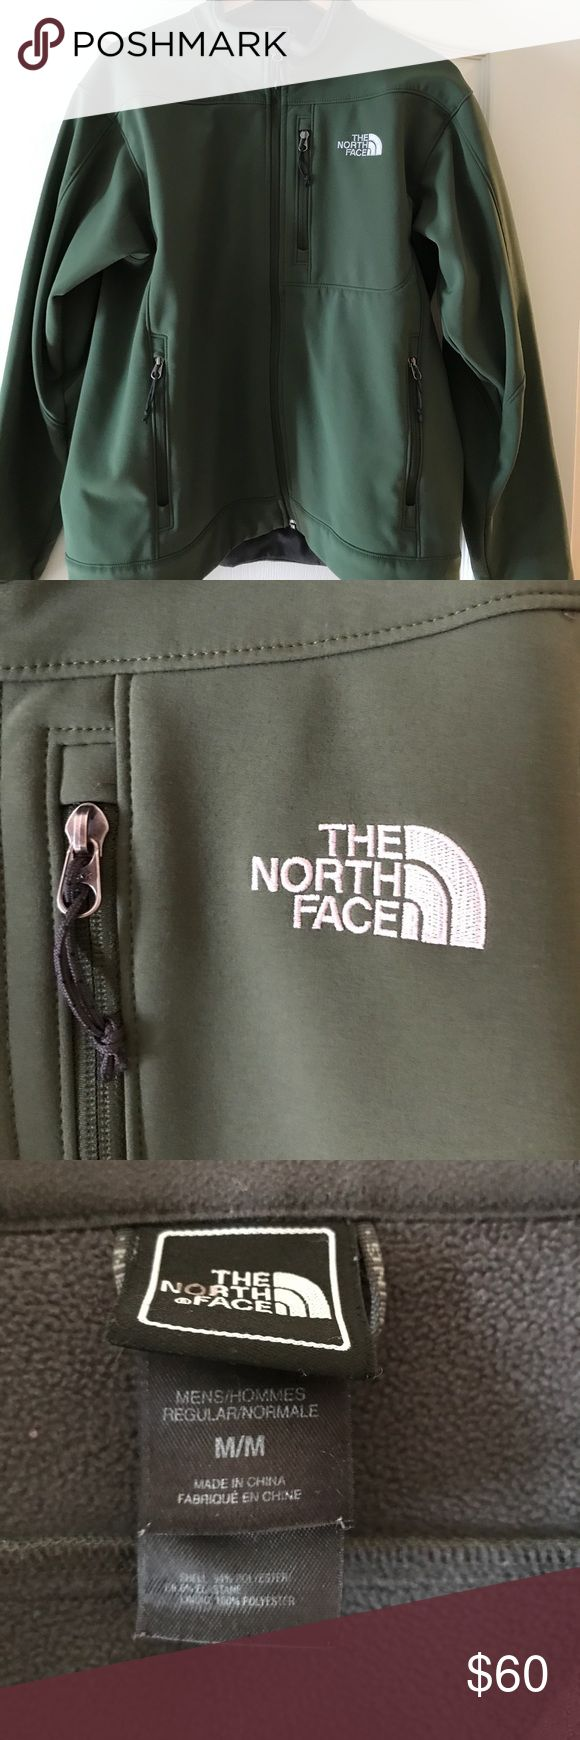 The North Face men's jacket The North Face men's fleece lined jacket. Only worn a few times. The North Face Jackets & Coats Performance Jackets